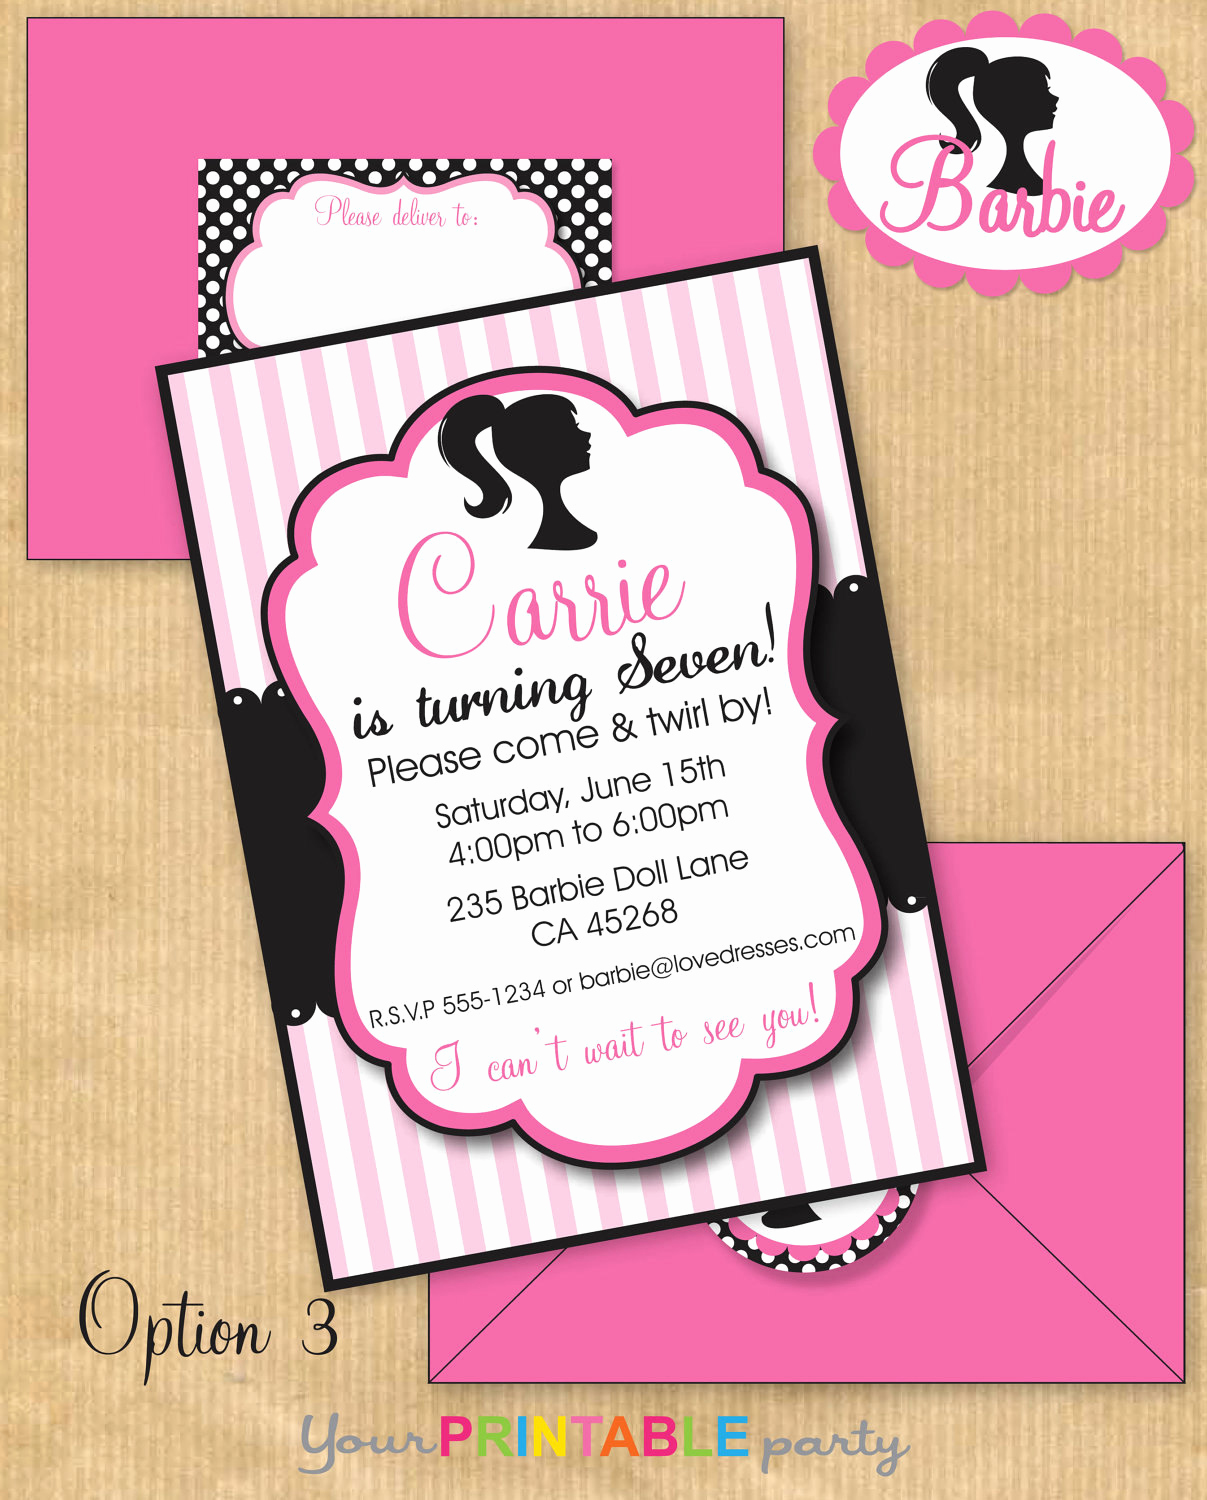 Free Barbie Invitation Templates Awesome Vintage Barbie Inspired Deluxe Birthday Party Invitation with